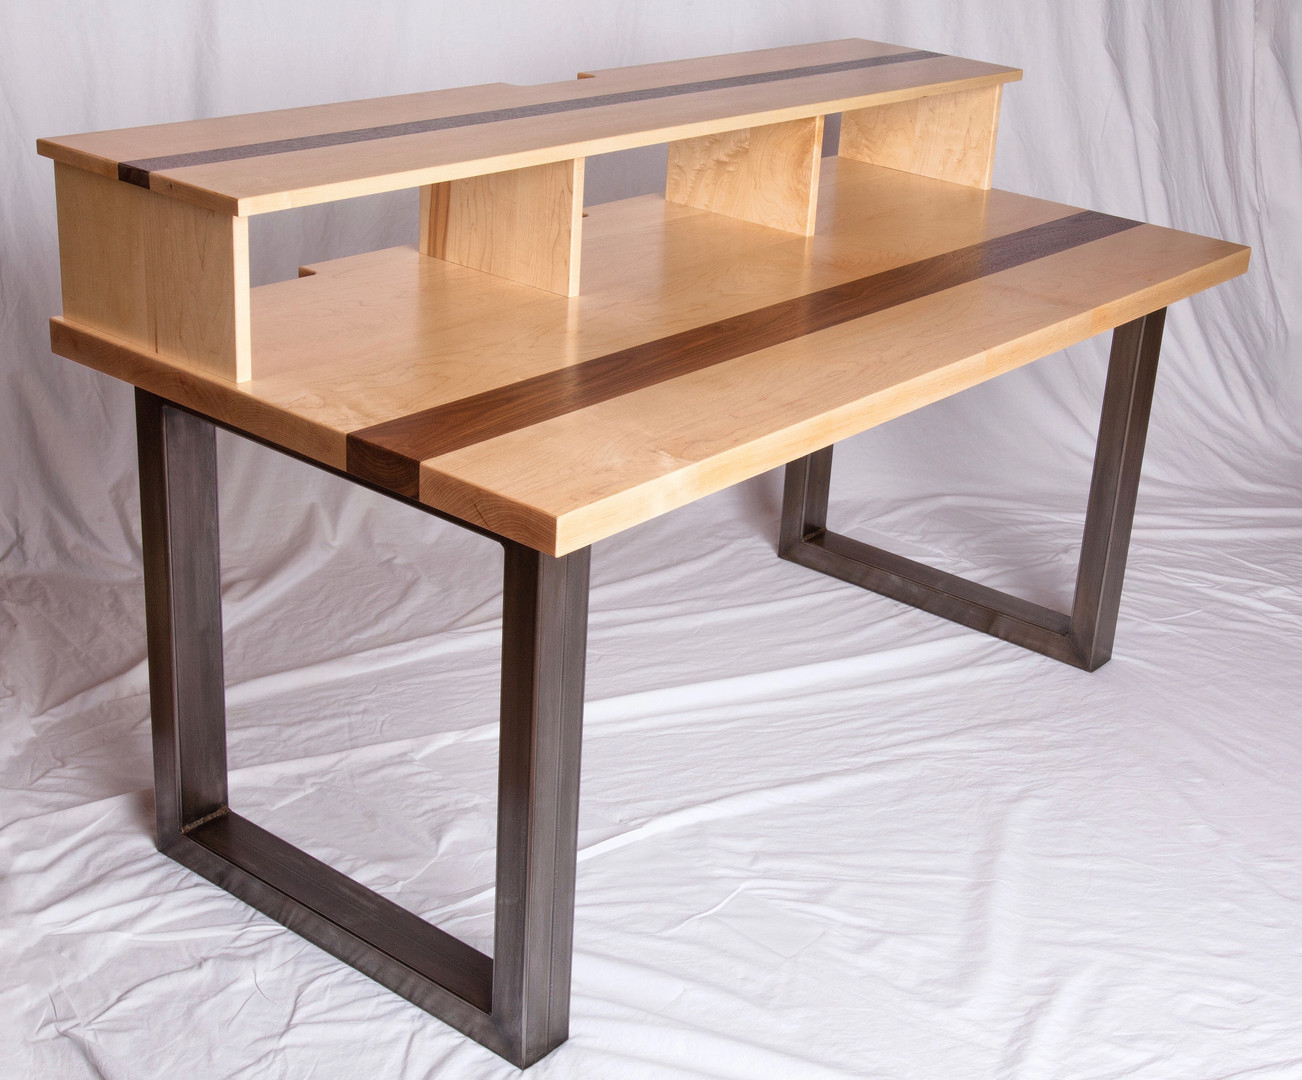 Metal, Maple and Walnut desk